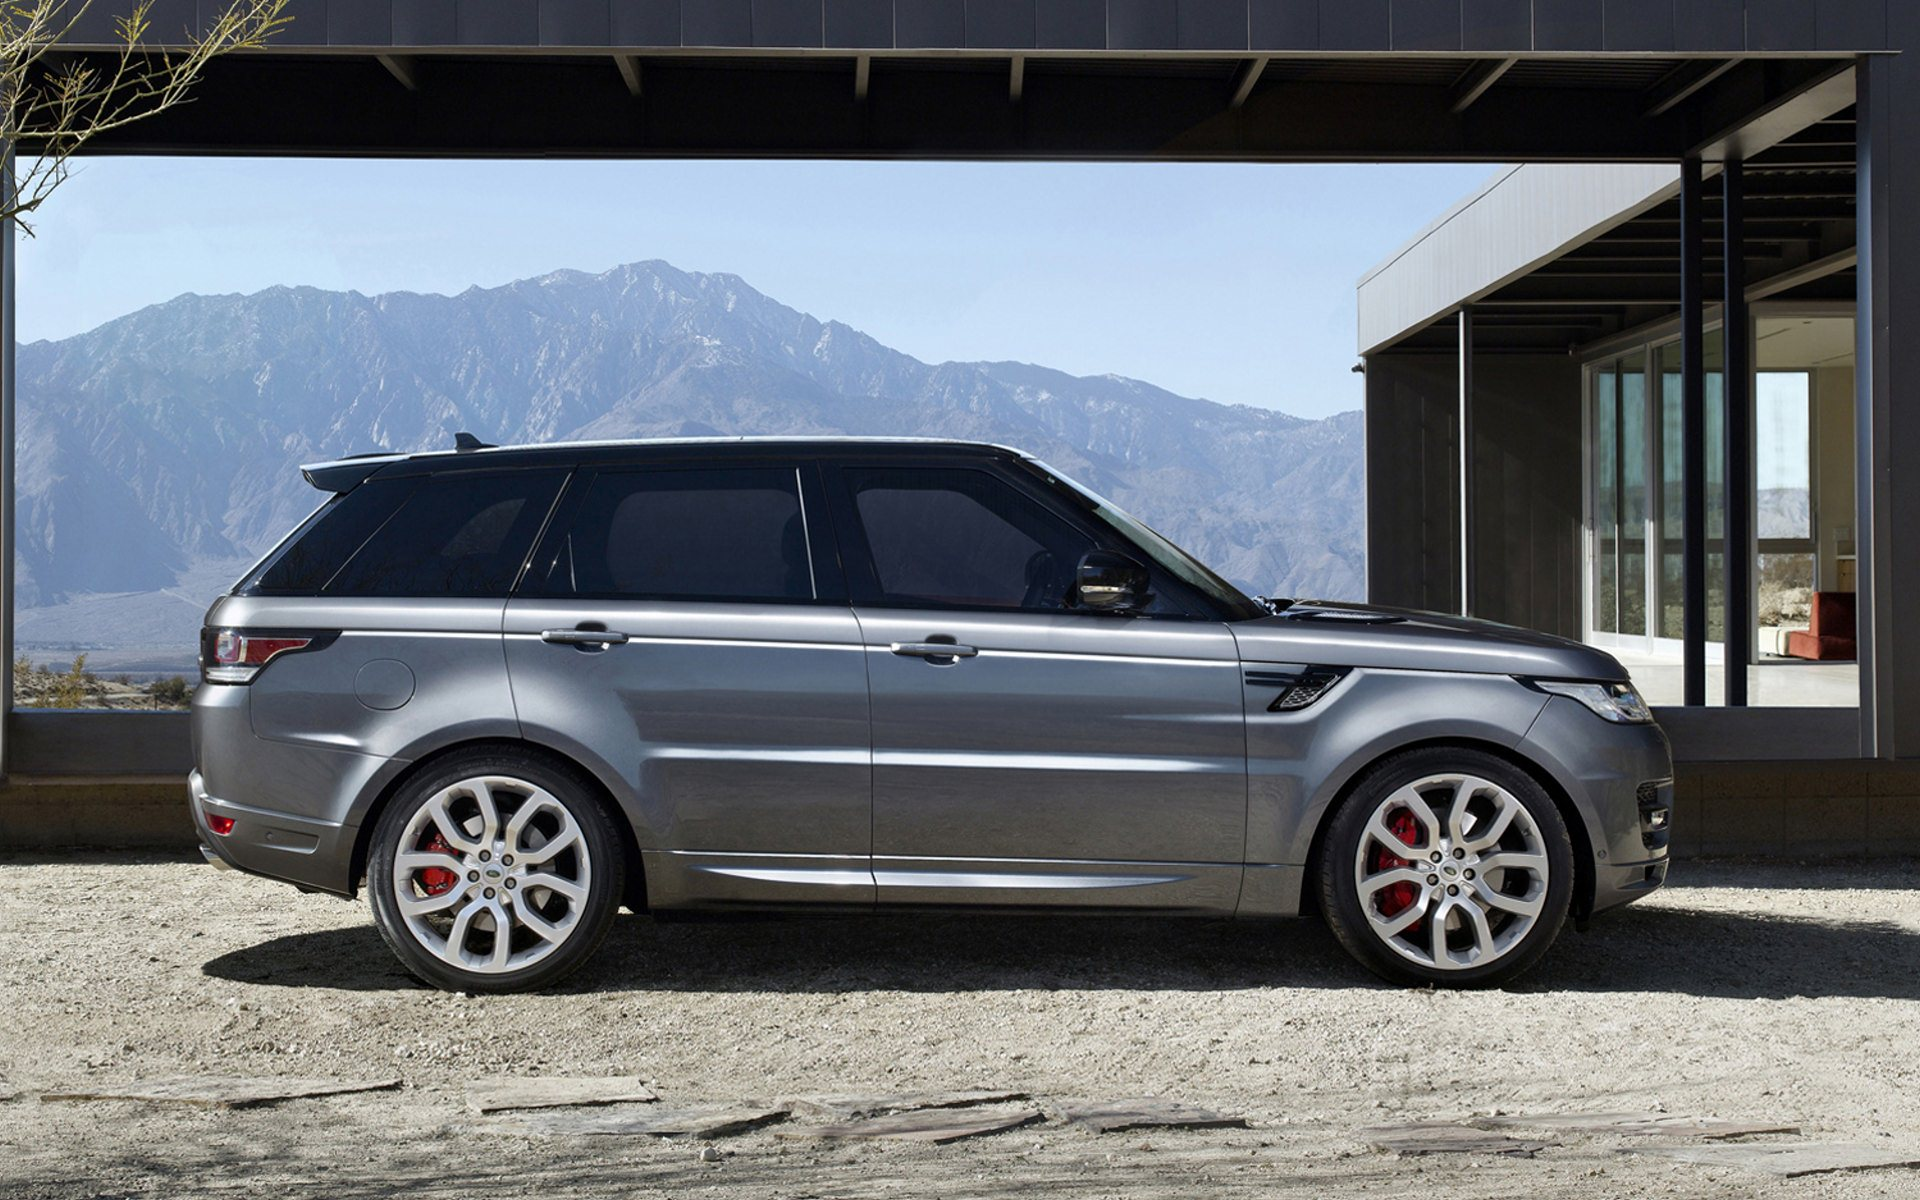 Sport Wallpaper Land Rovers: 2014 Range Rover Sport Wallpapers